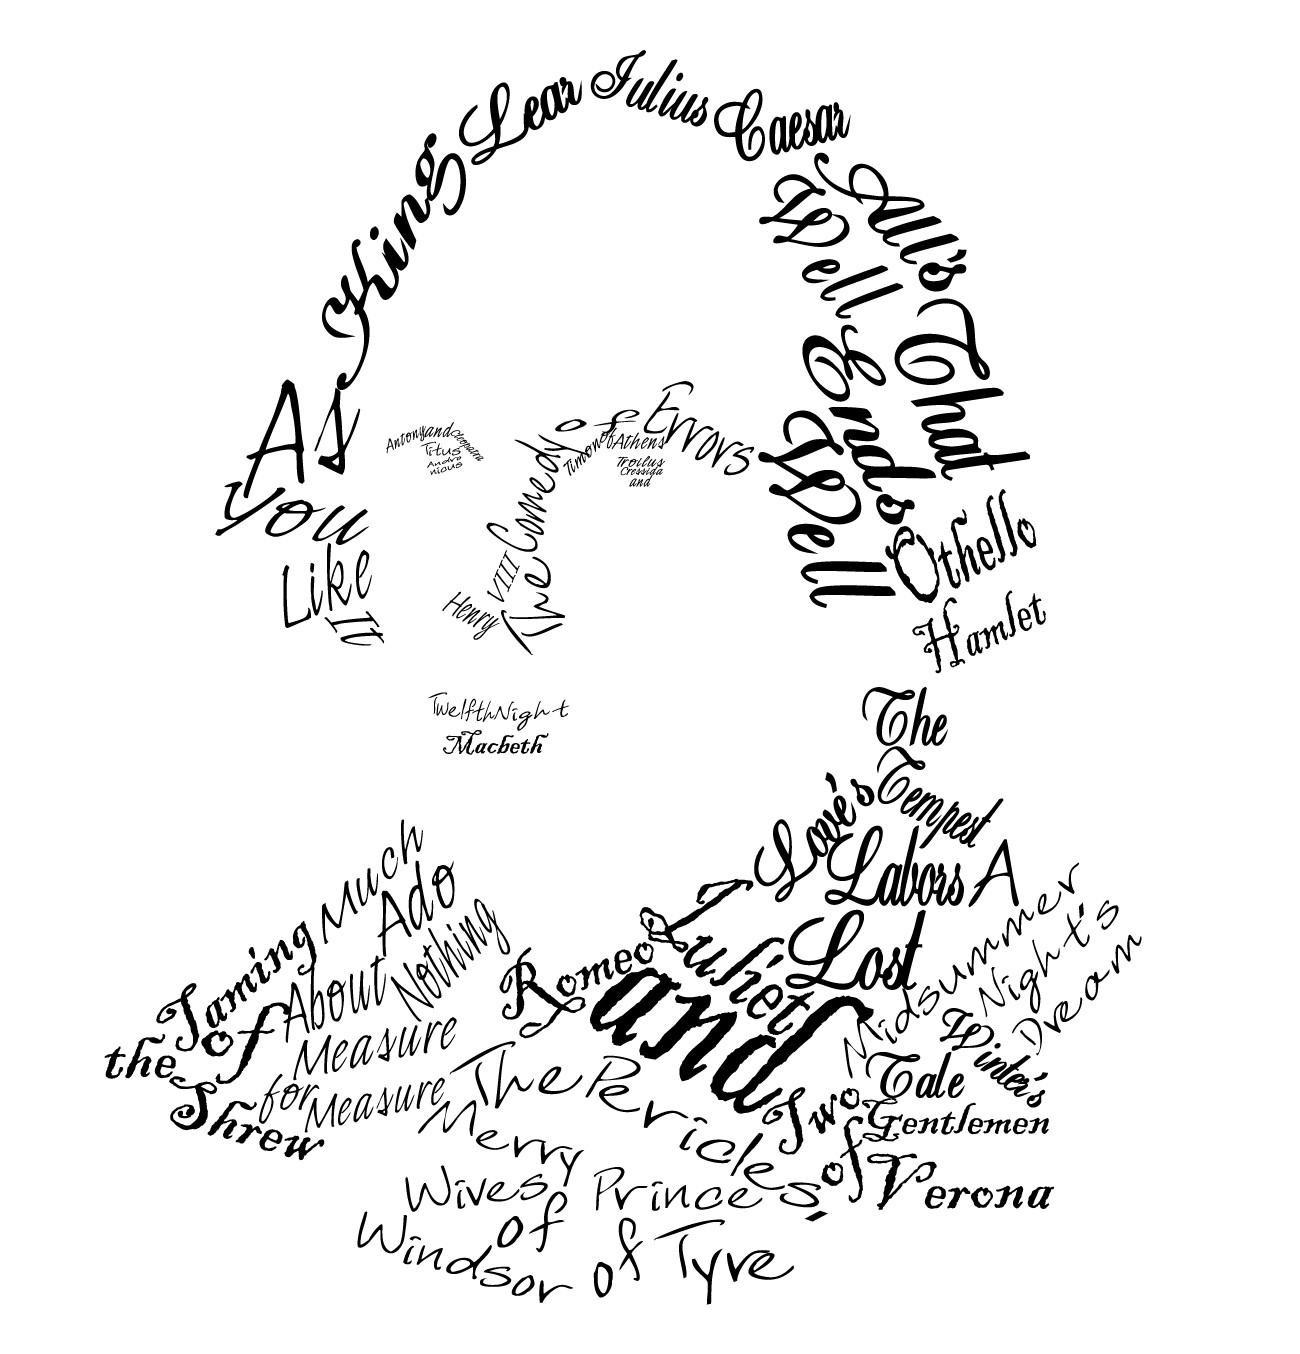 why should we study shakespeare blog di cristiana ziraldo shakespeare in type by kawaiichan789